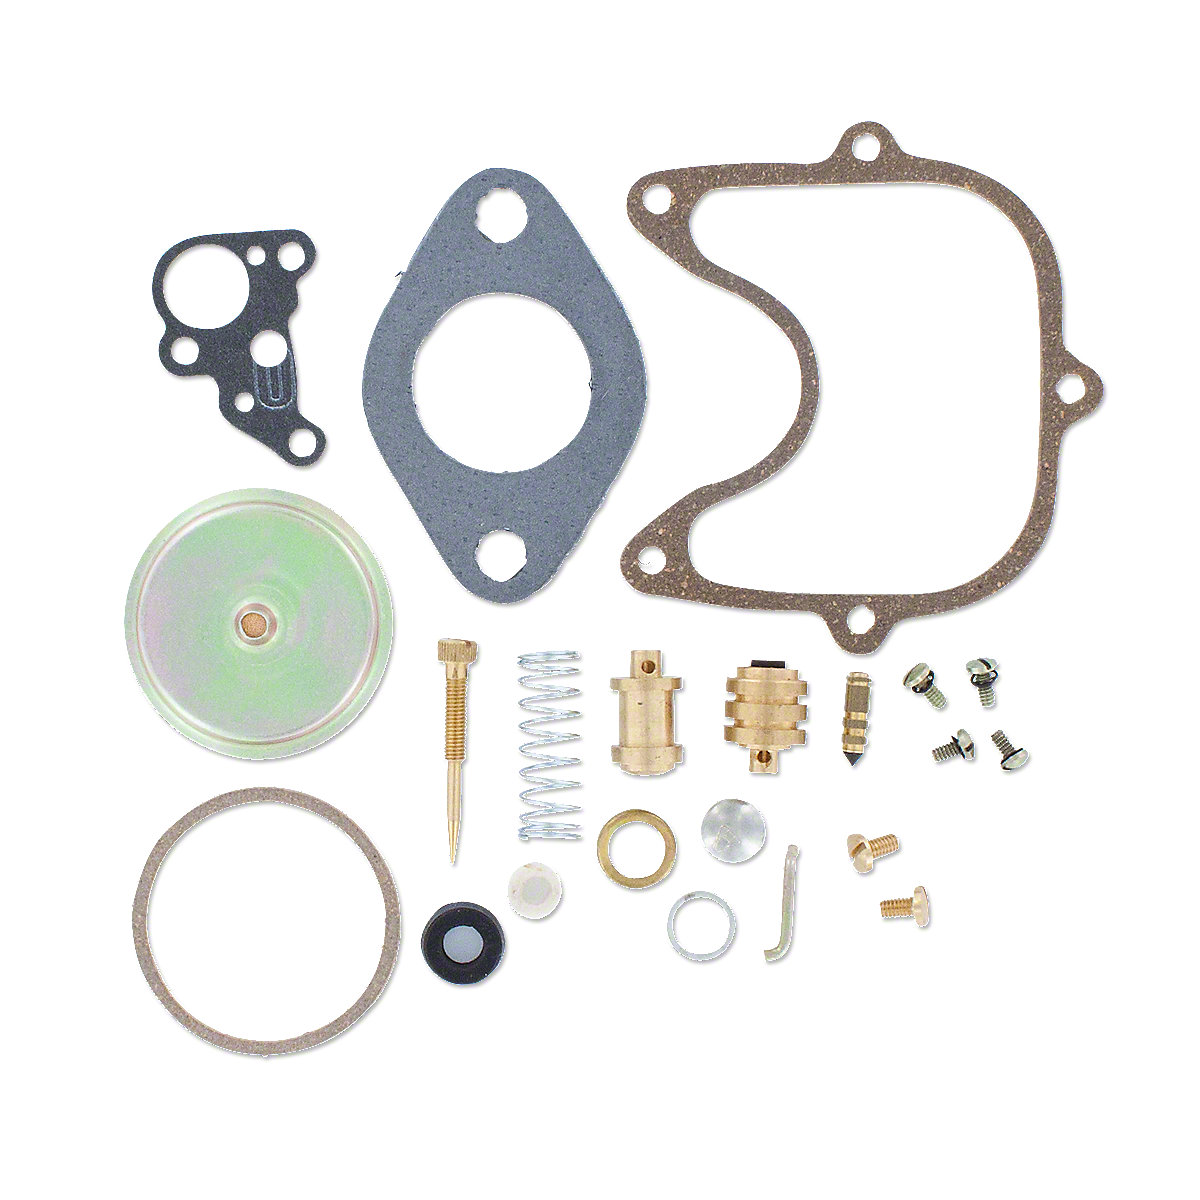 Economy Carburetor Kit for Holley Carburetors | Holley Carb Kit